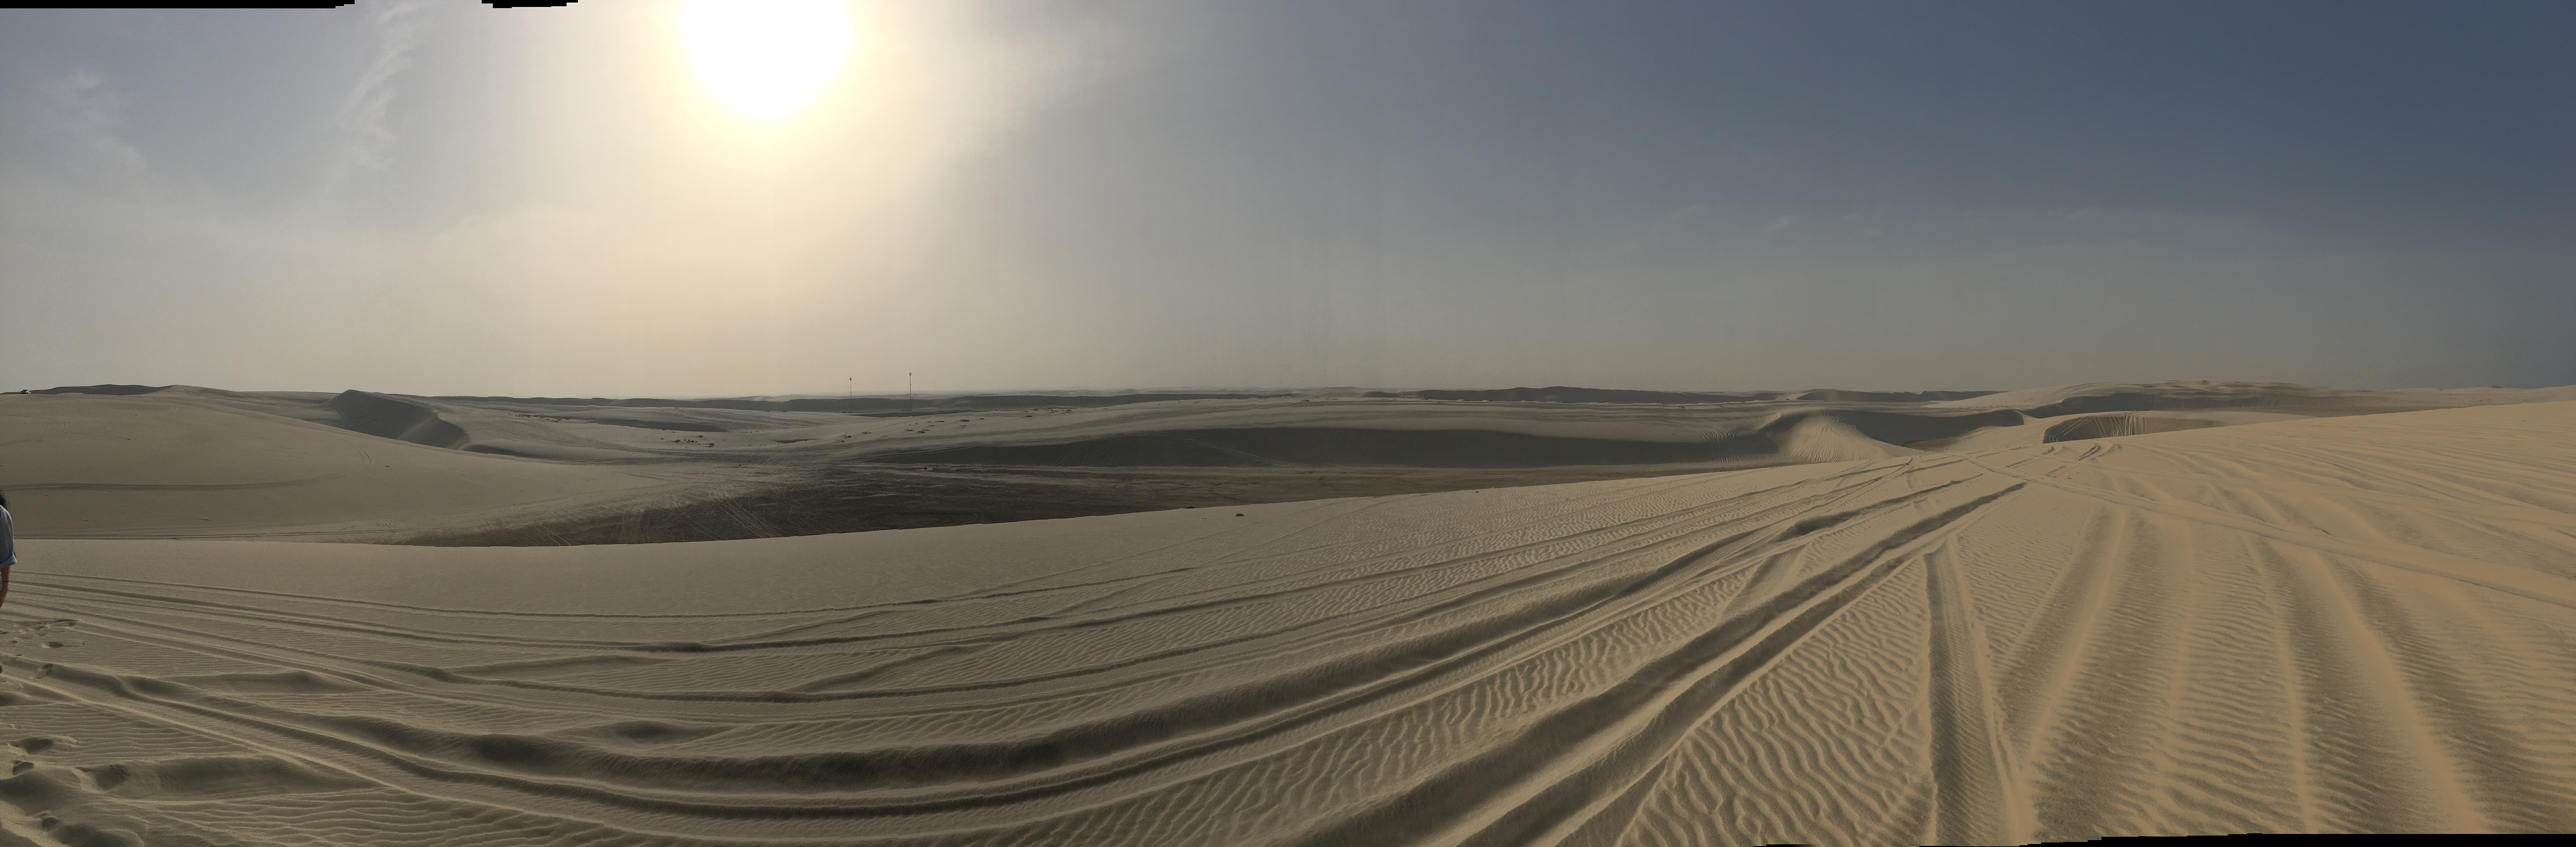 Monique Lhuillier travel diary: Breathtaking view of the desert